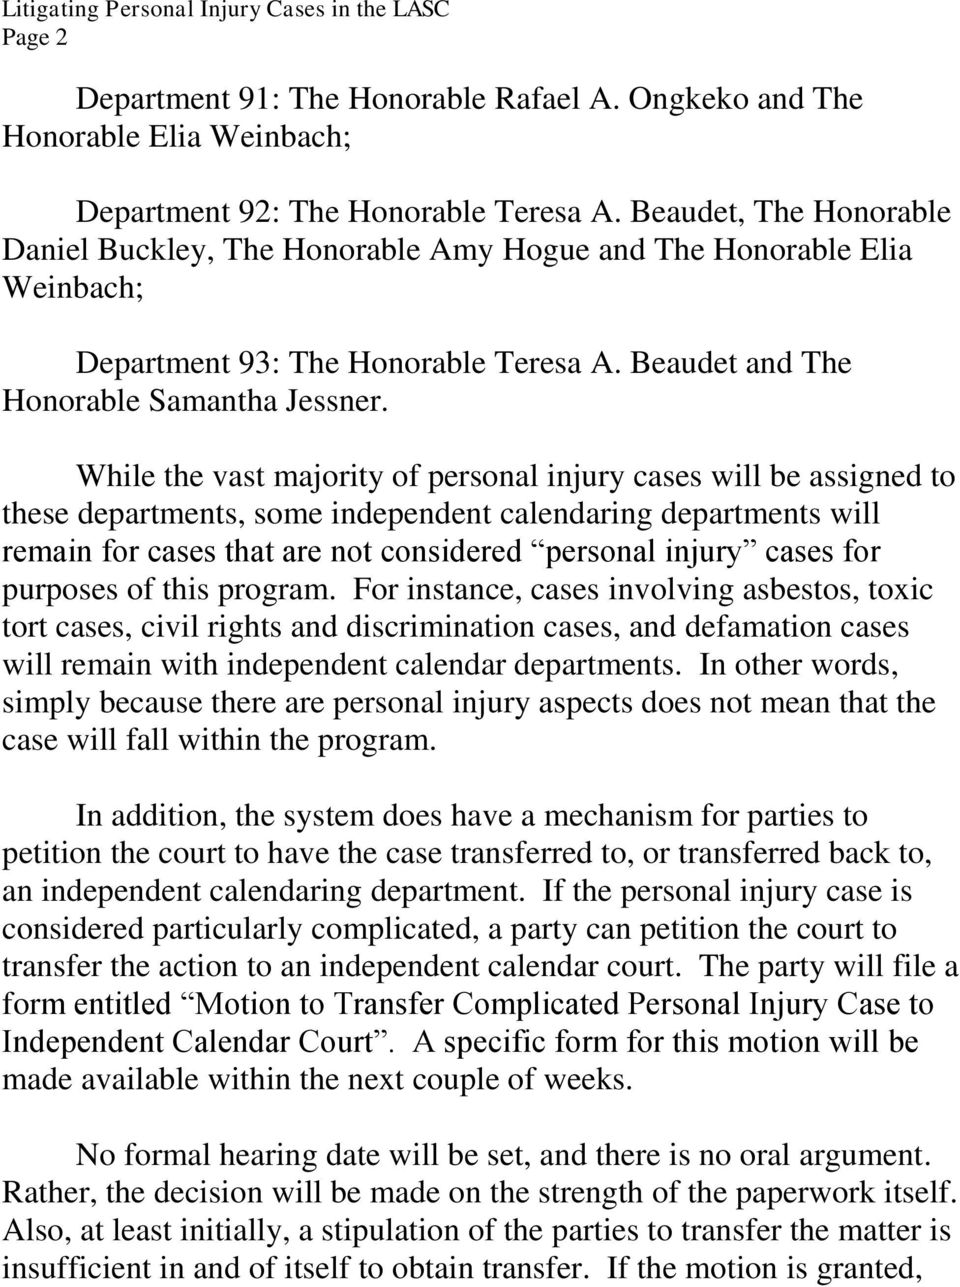 While the vast majority of personal injury cases will be assigned to these departments, some independent calendaring departments will remain for cases that are not considered personal injury cases